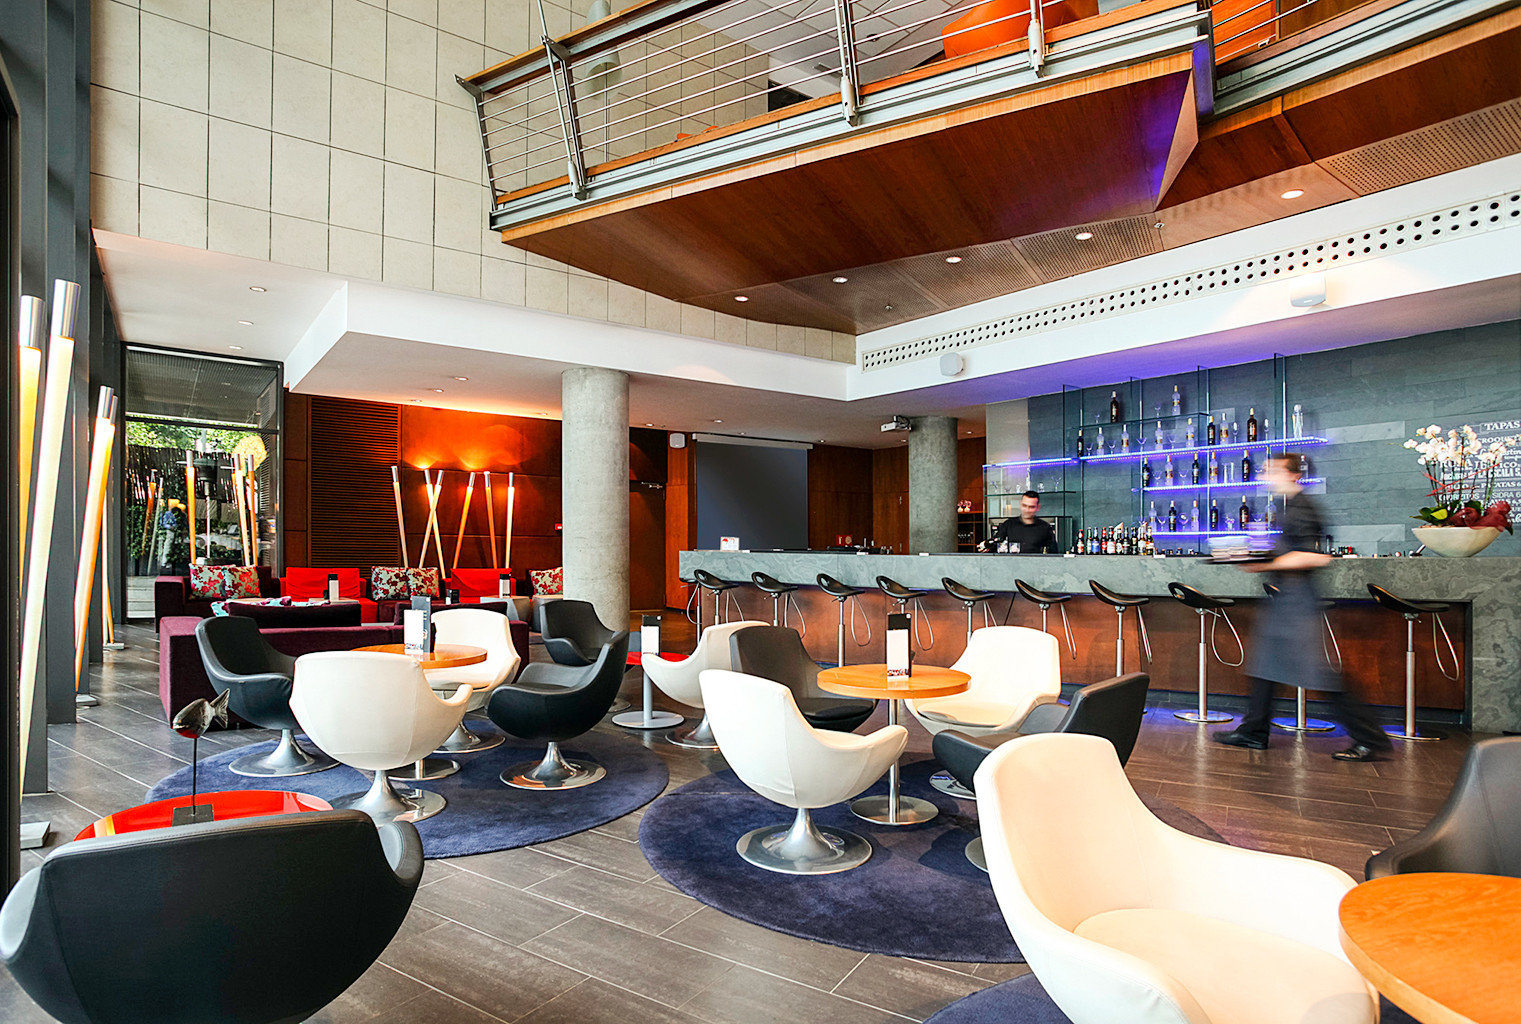 Buildings Business City Dining Drink Eat Modern Scenic views Lobby restaurant Bar Resort cluttered